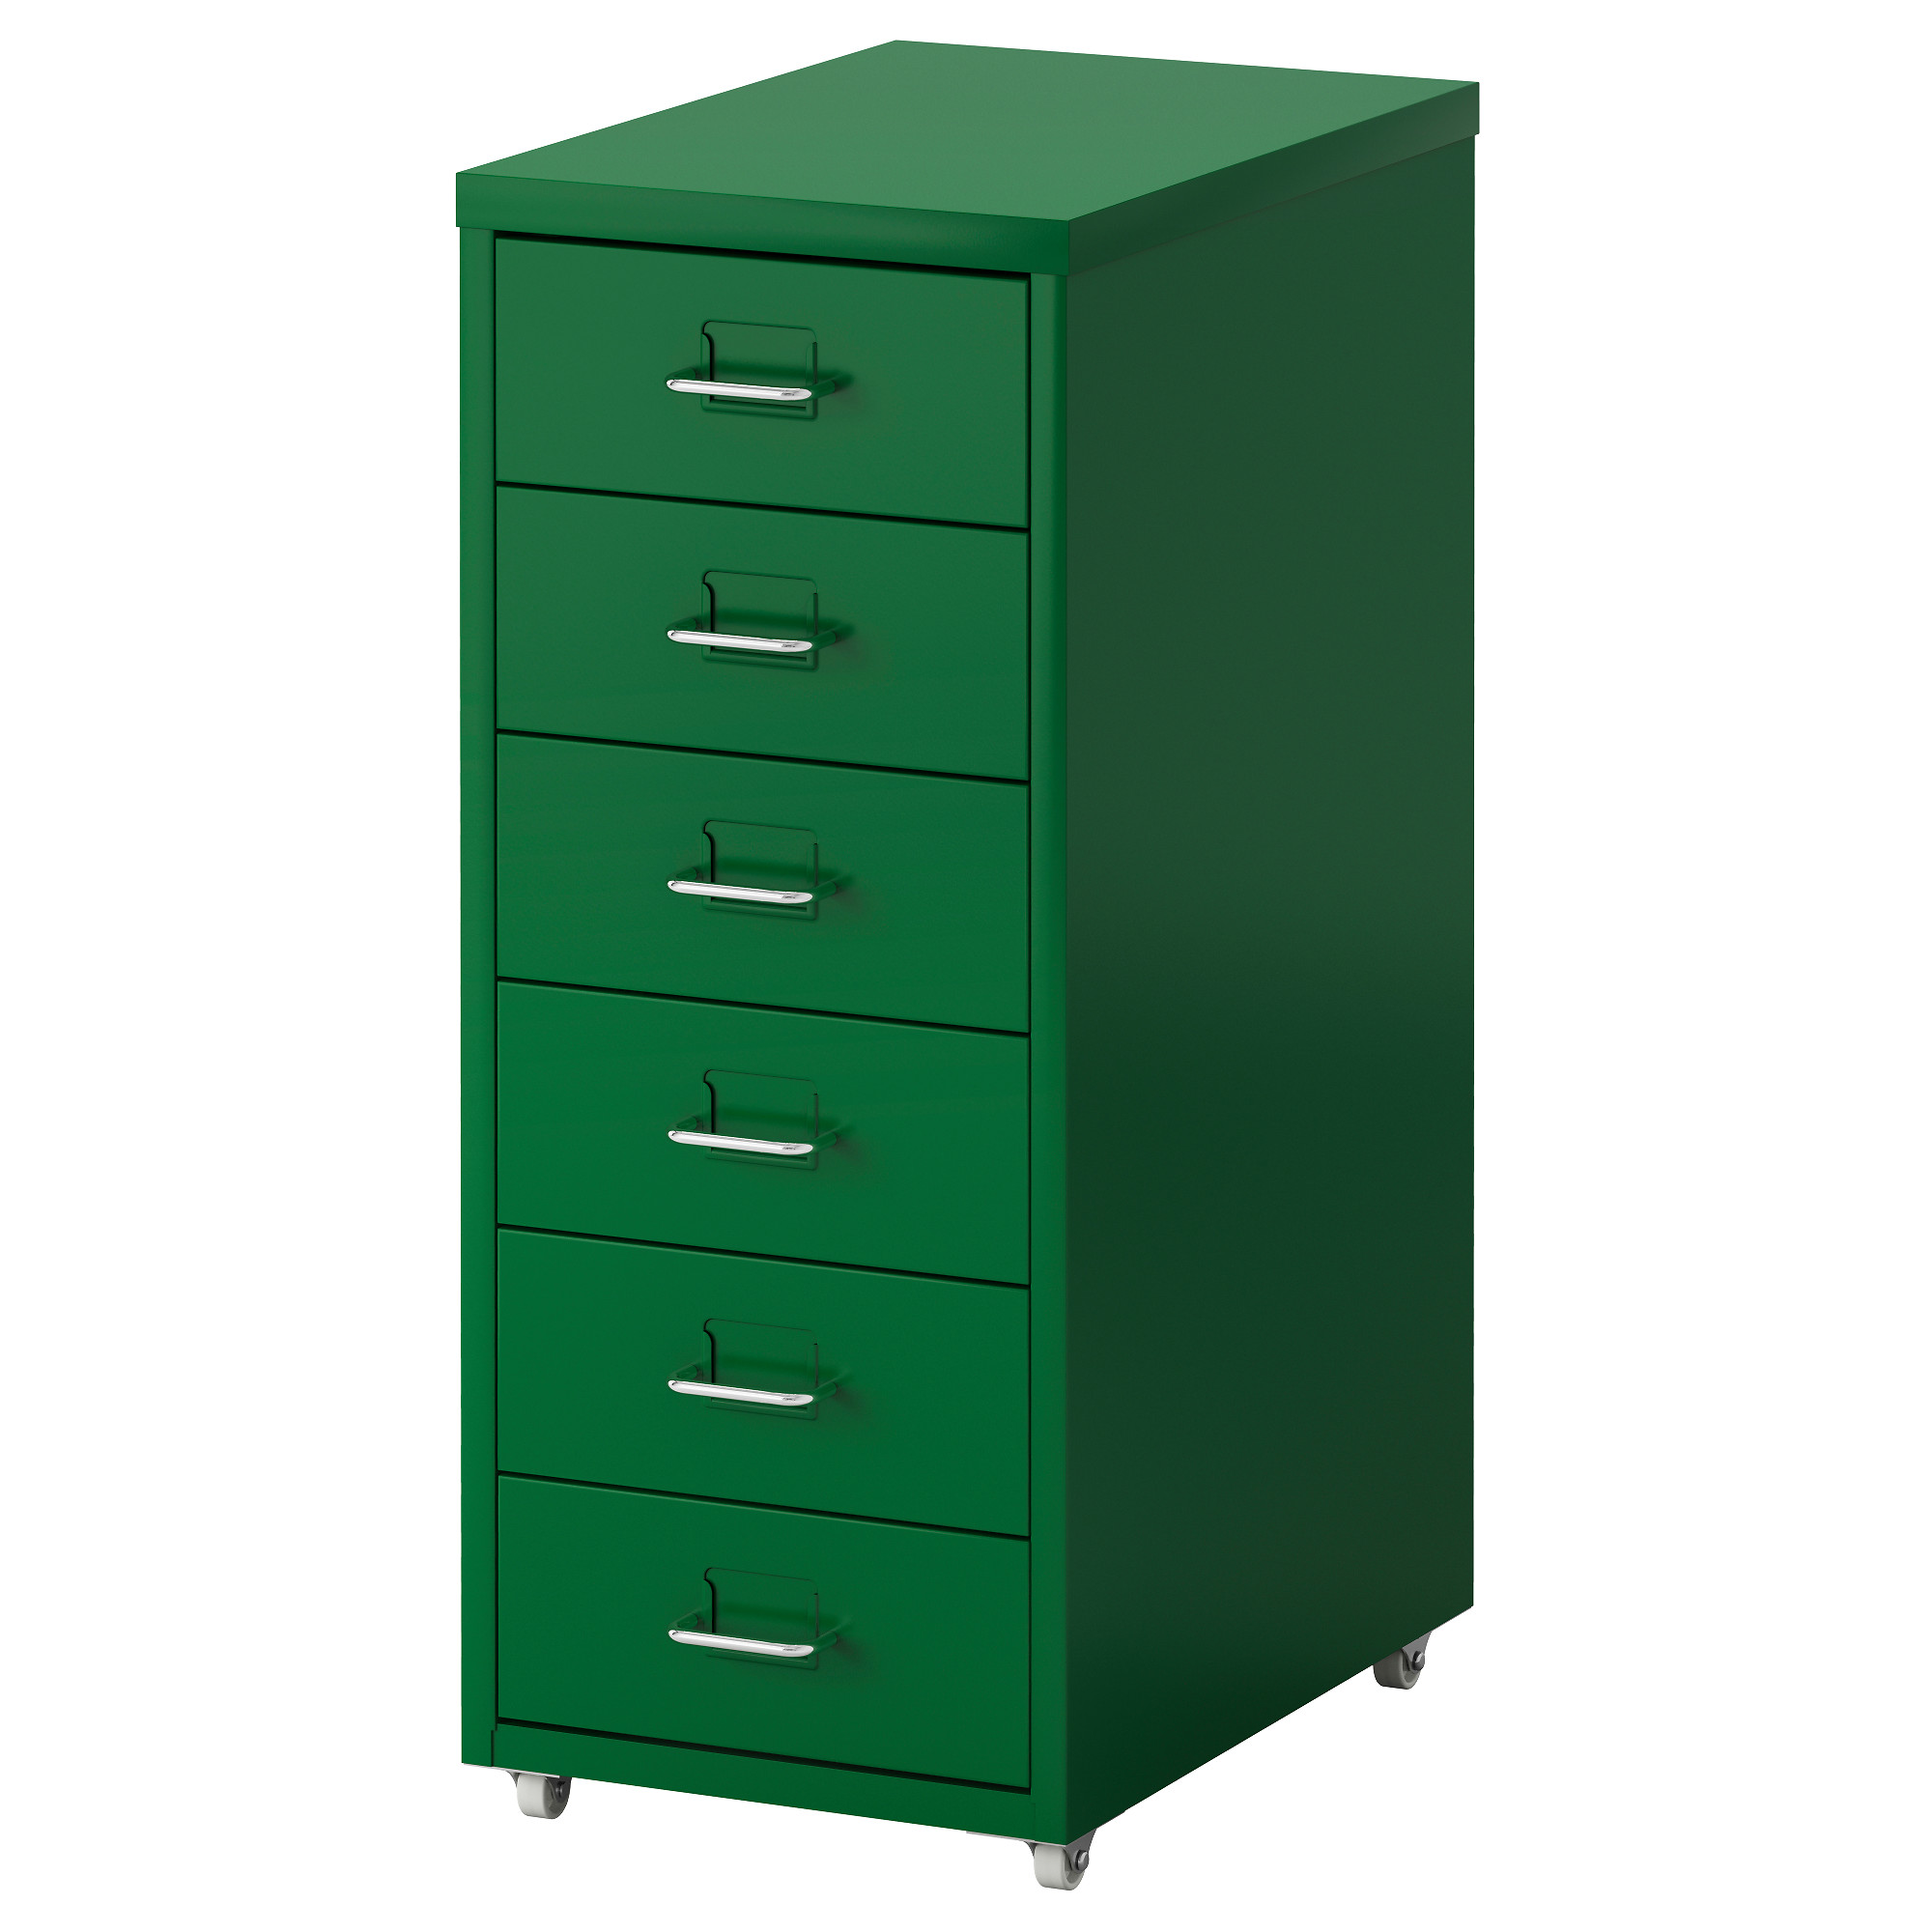 helmer drawer unit on casters - green - ikea